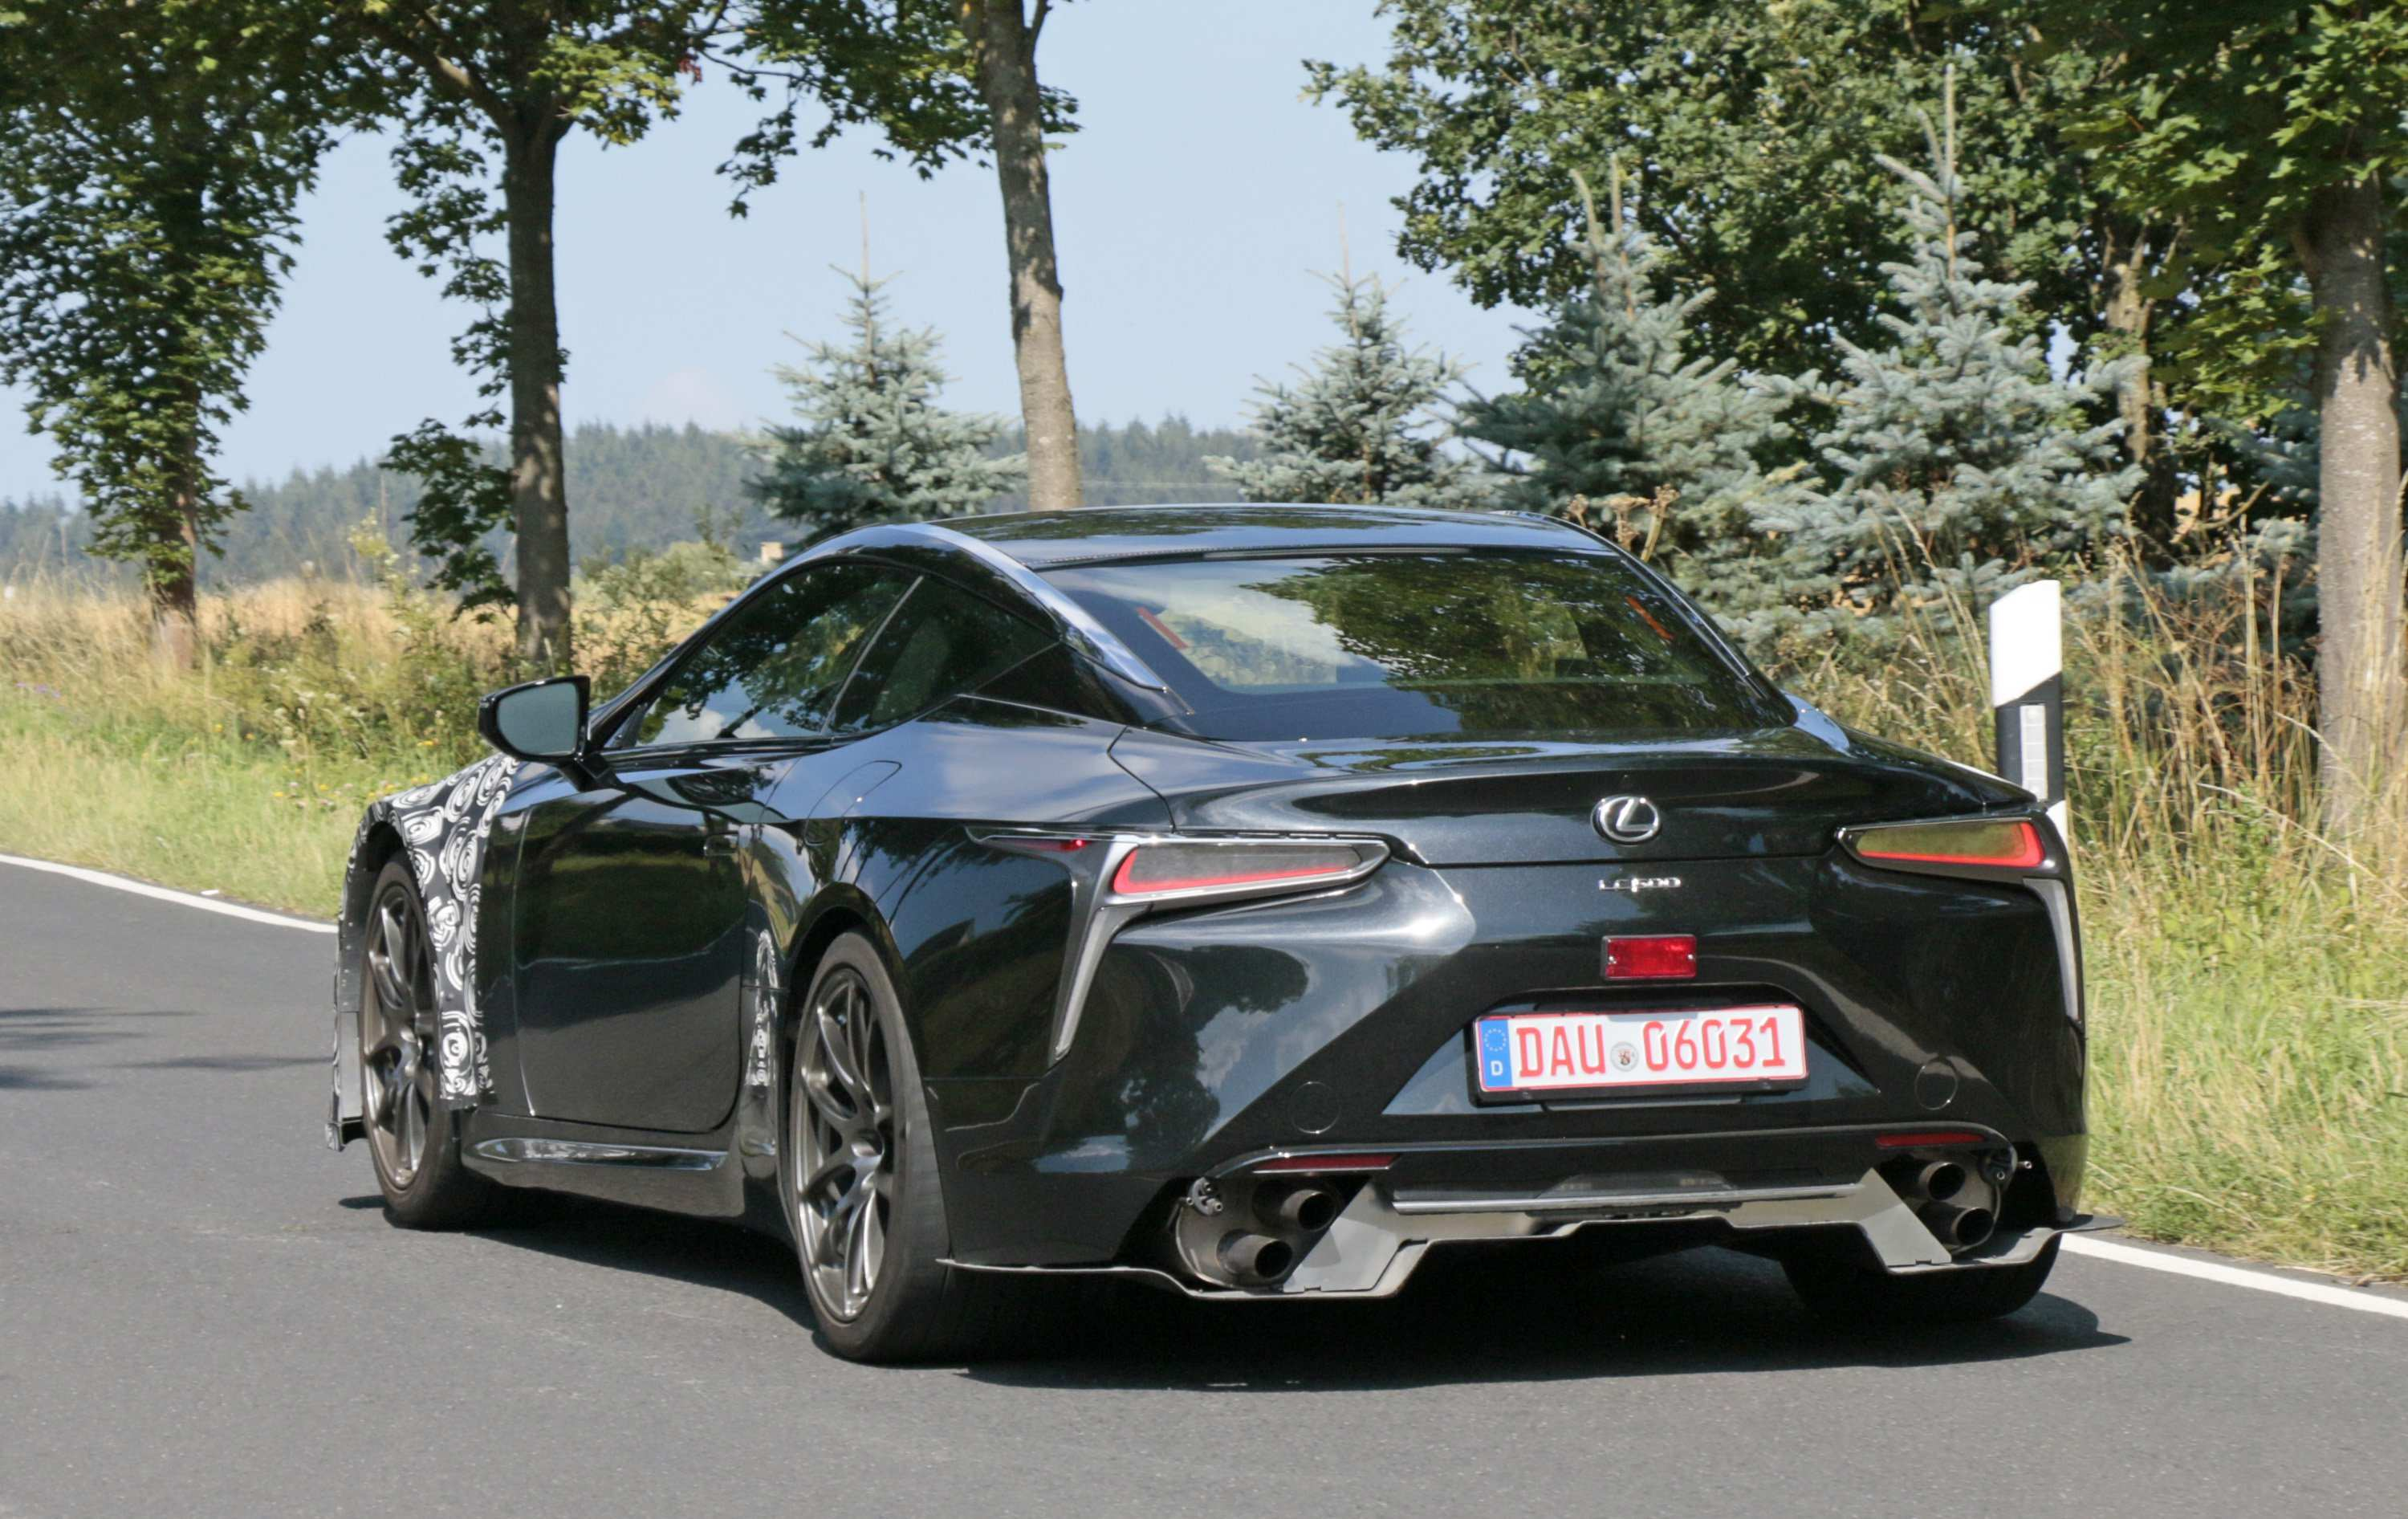 97 A 2020 Lexus Lf Lc 2 Research New